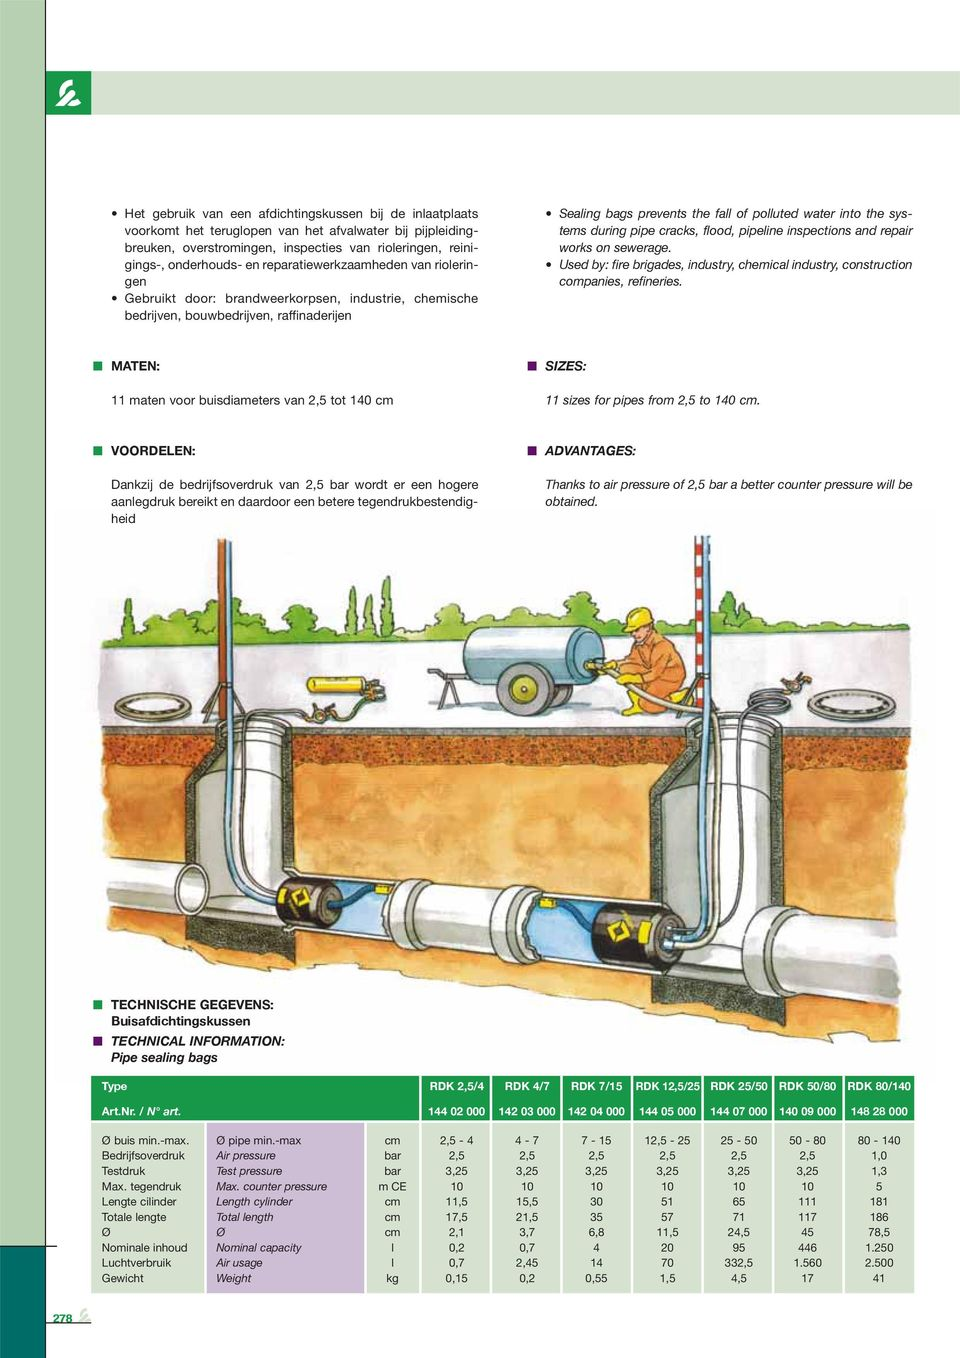 during pipe cracks, flood, pipeline inspections and repair works on sewerage. Used by: fire brigades, industry, chemical industry, construction companies, refineries.